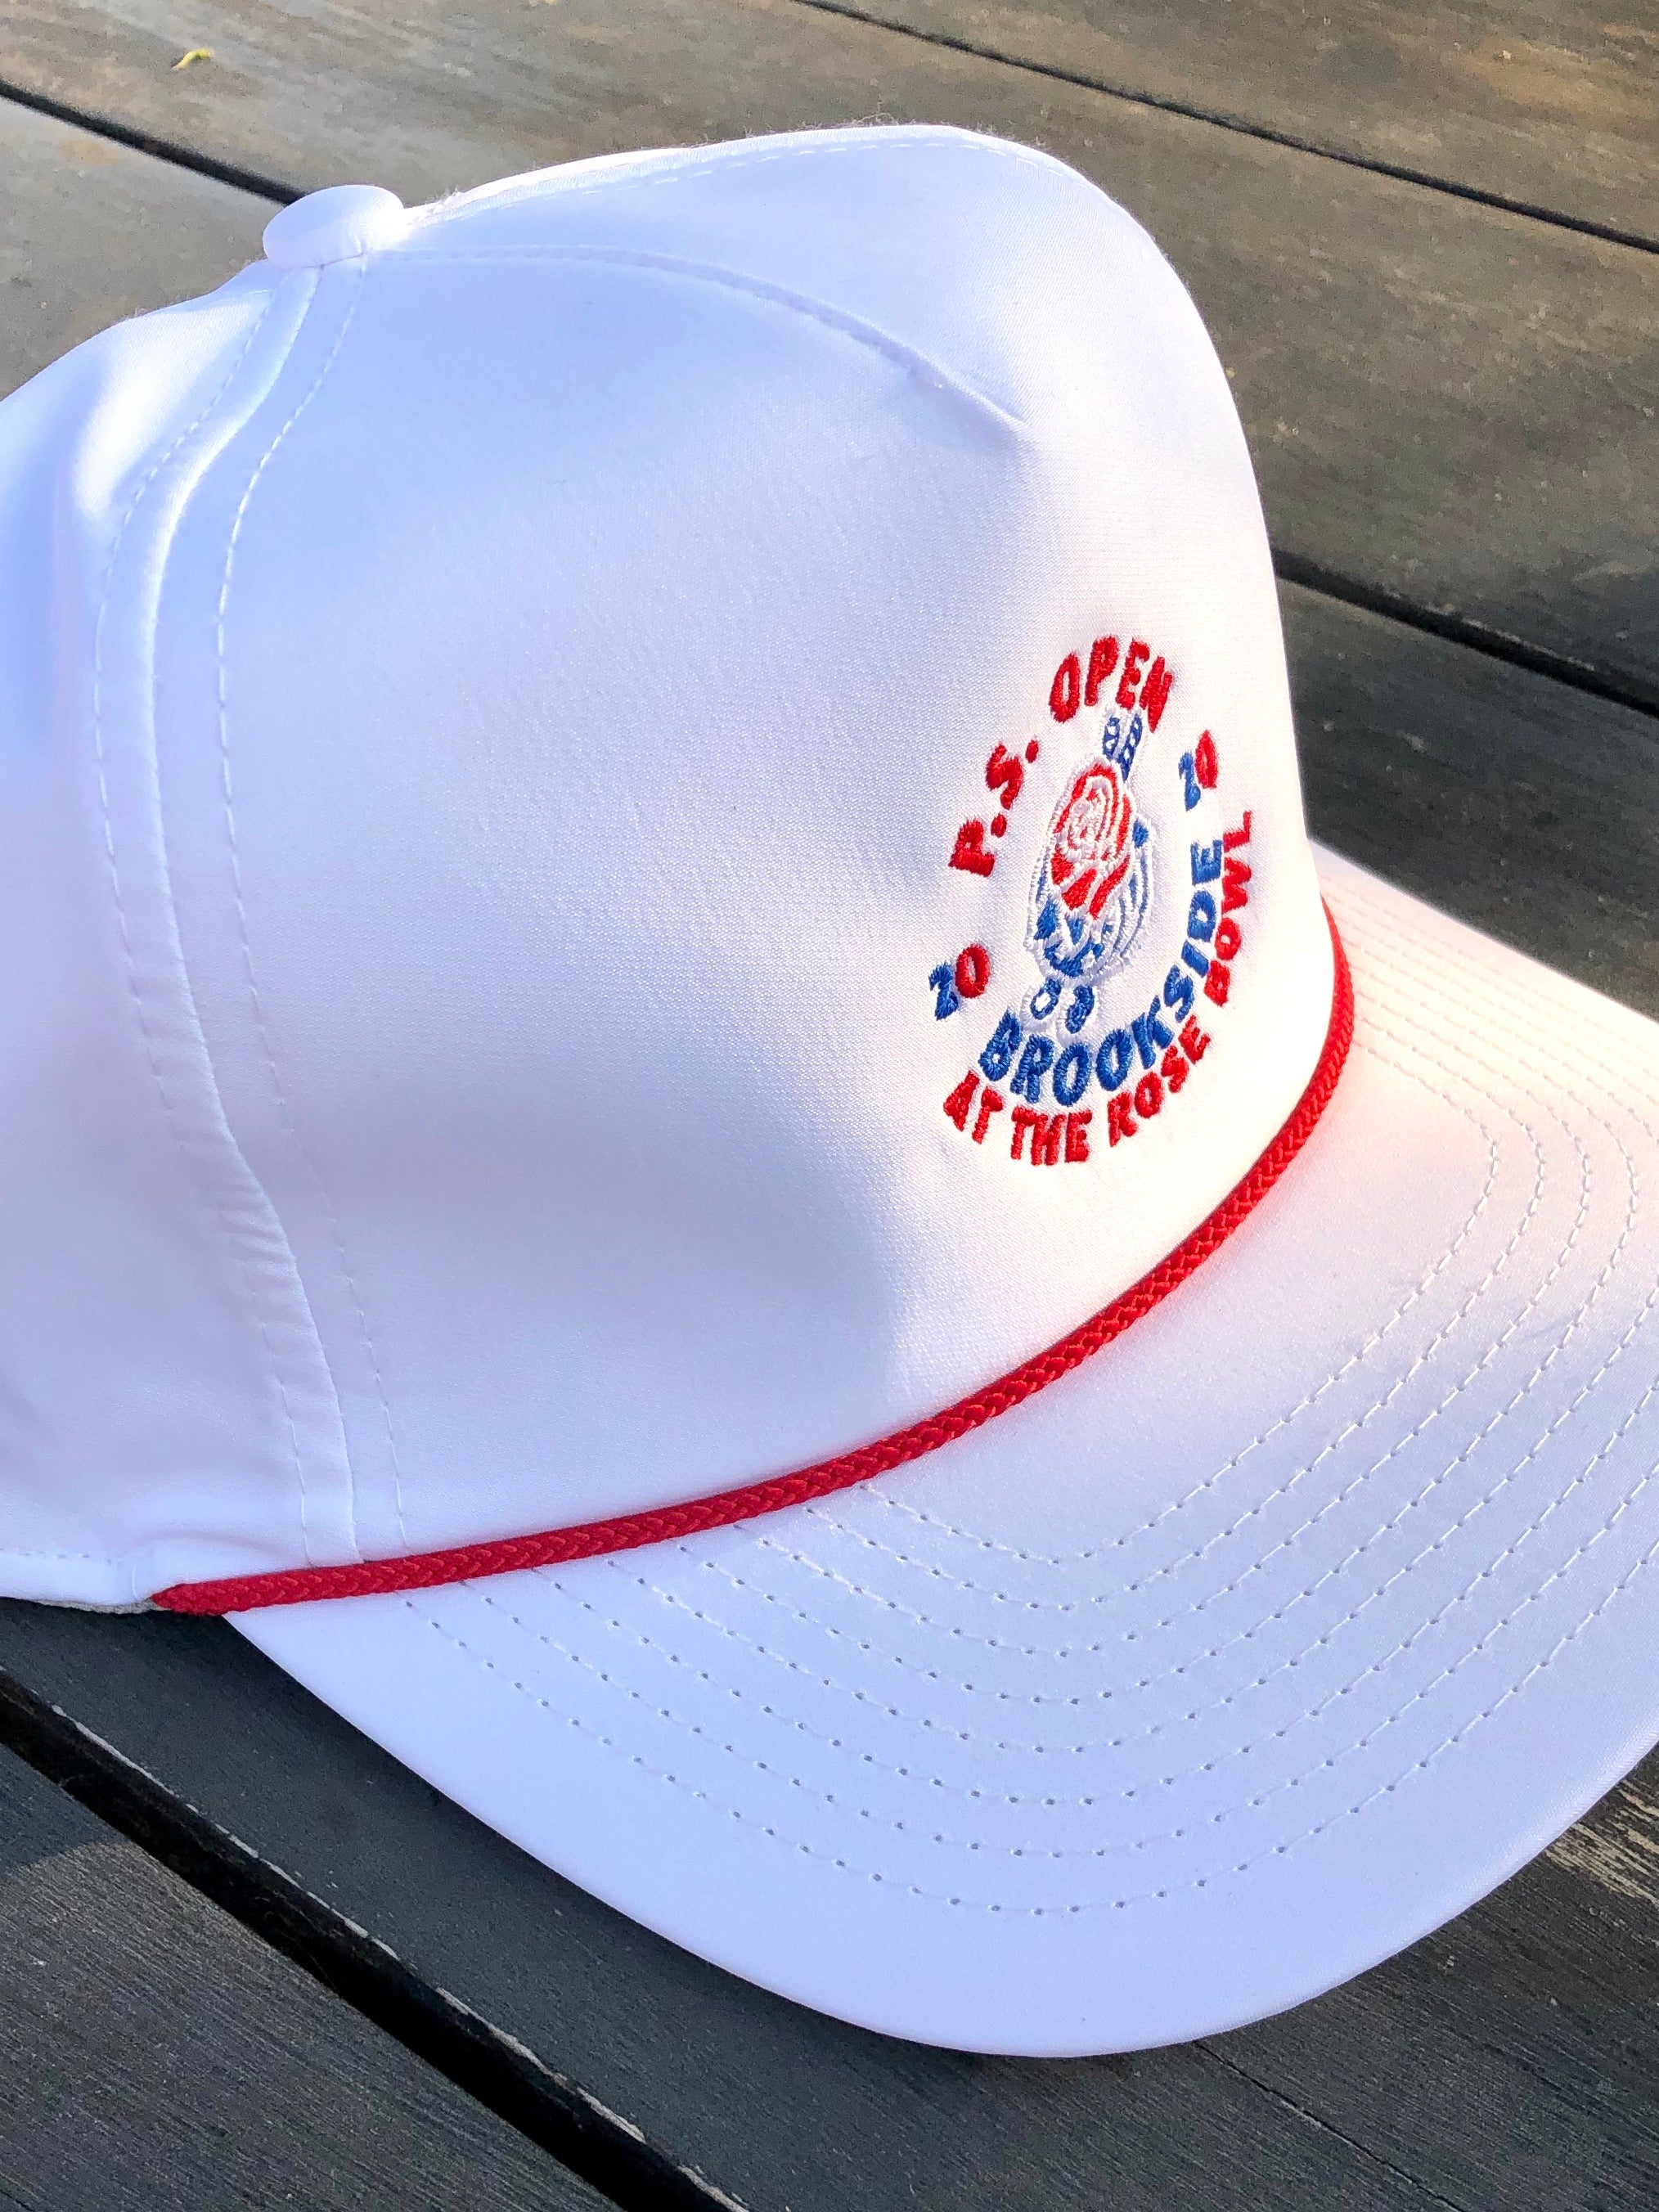 PS Open Limited Edition hat